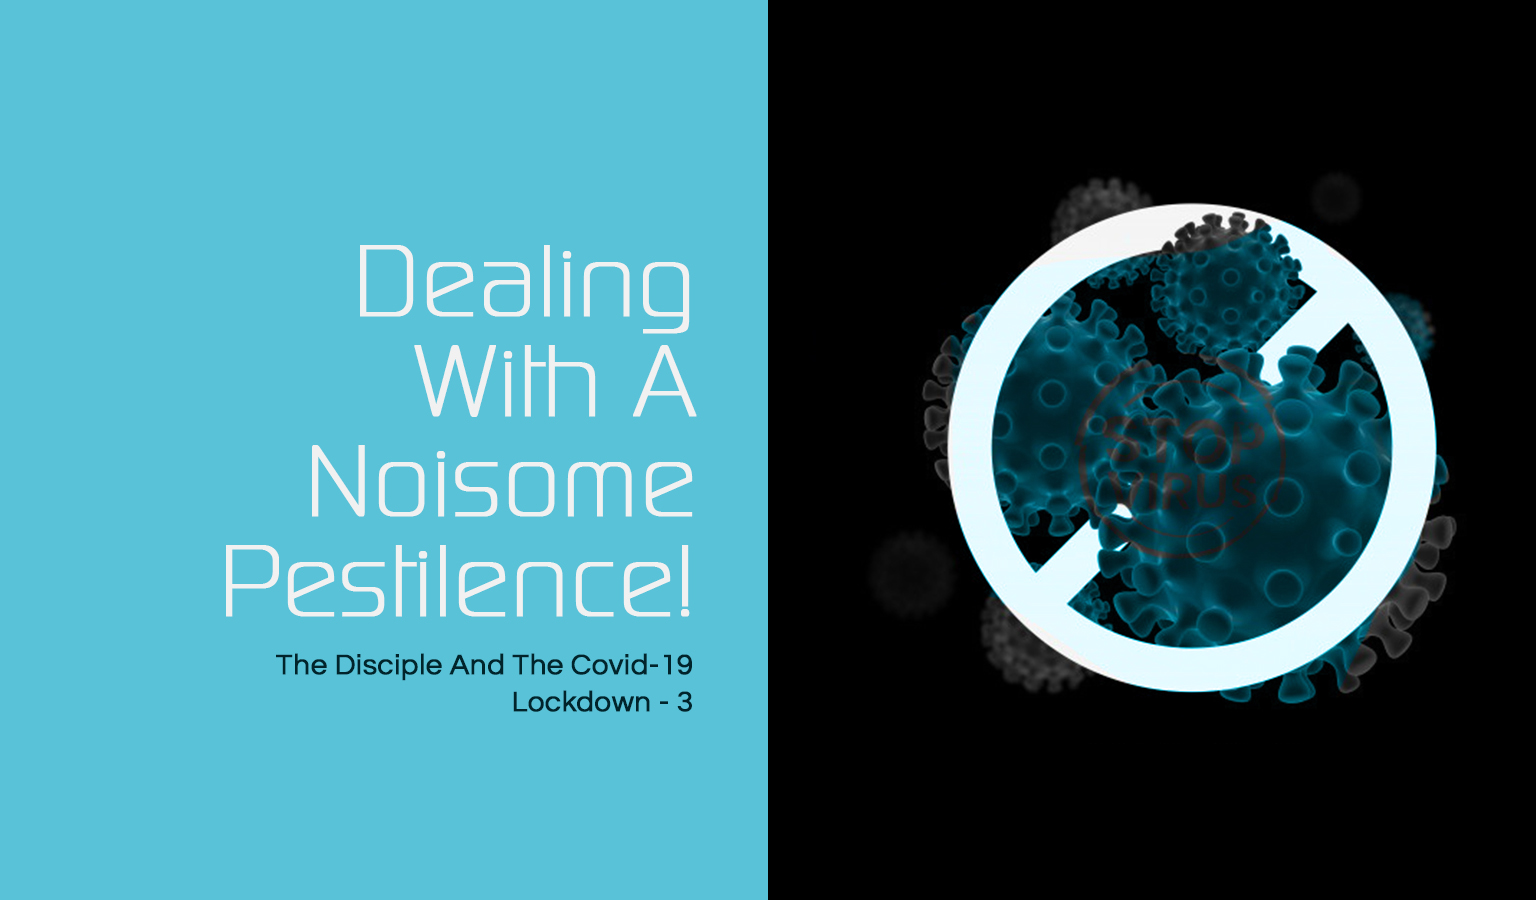 Dealing With A Noisome Pestilence!